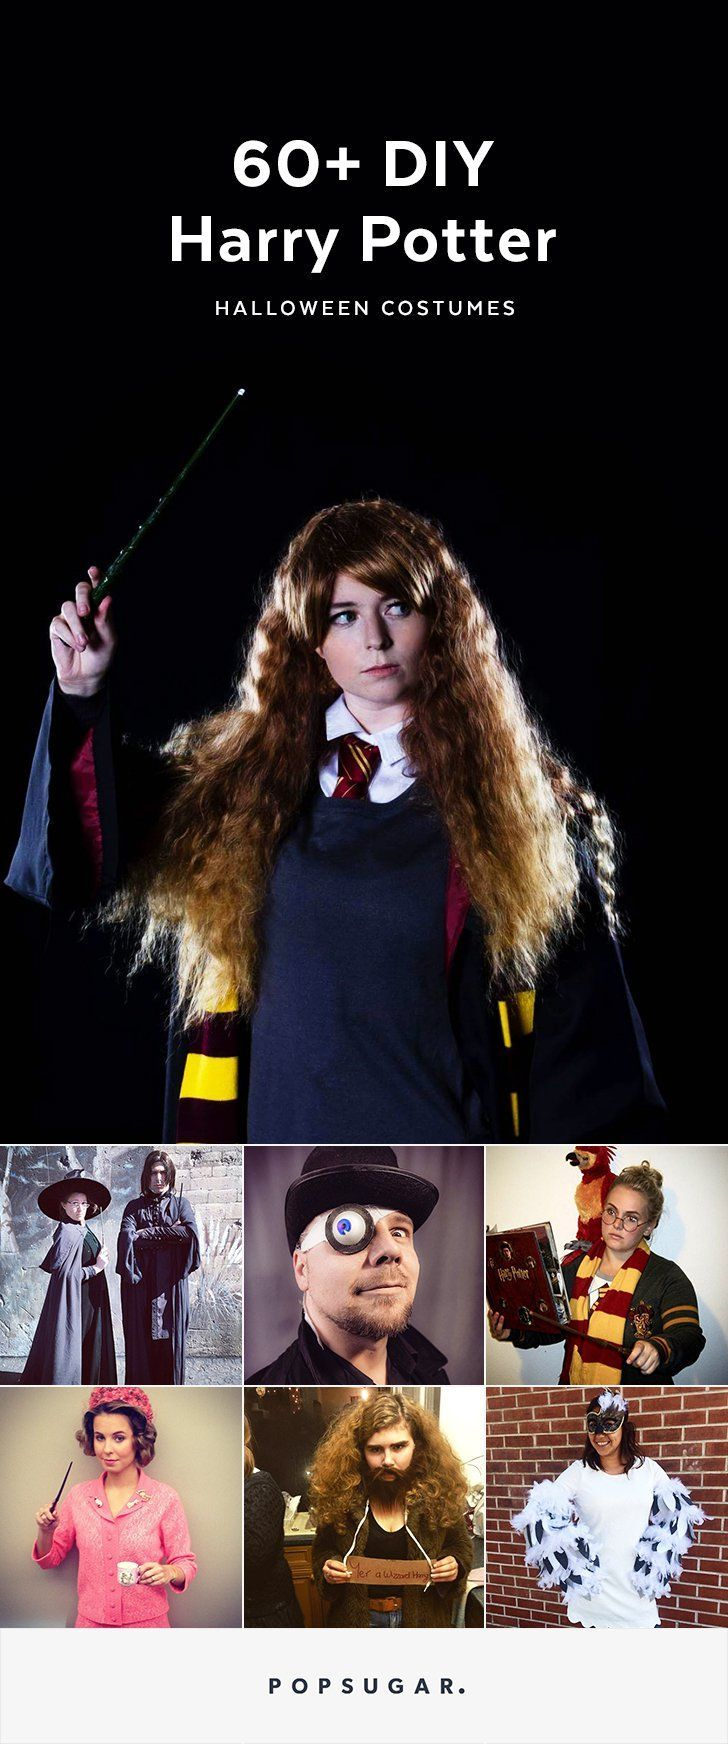 If you're a wizard at heart, these DIY Harry Potter Halloween costumes are sure to tickle your fancy. Check out these looks to get inspired!